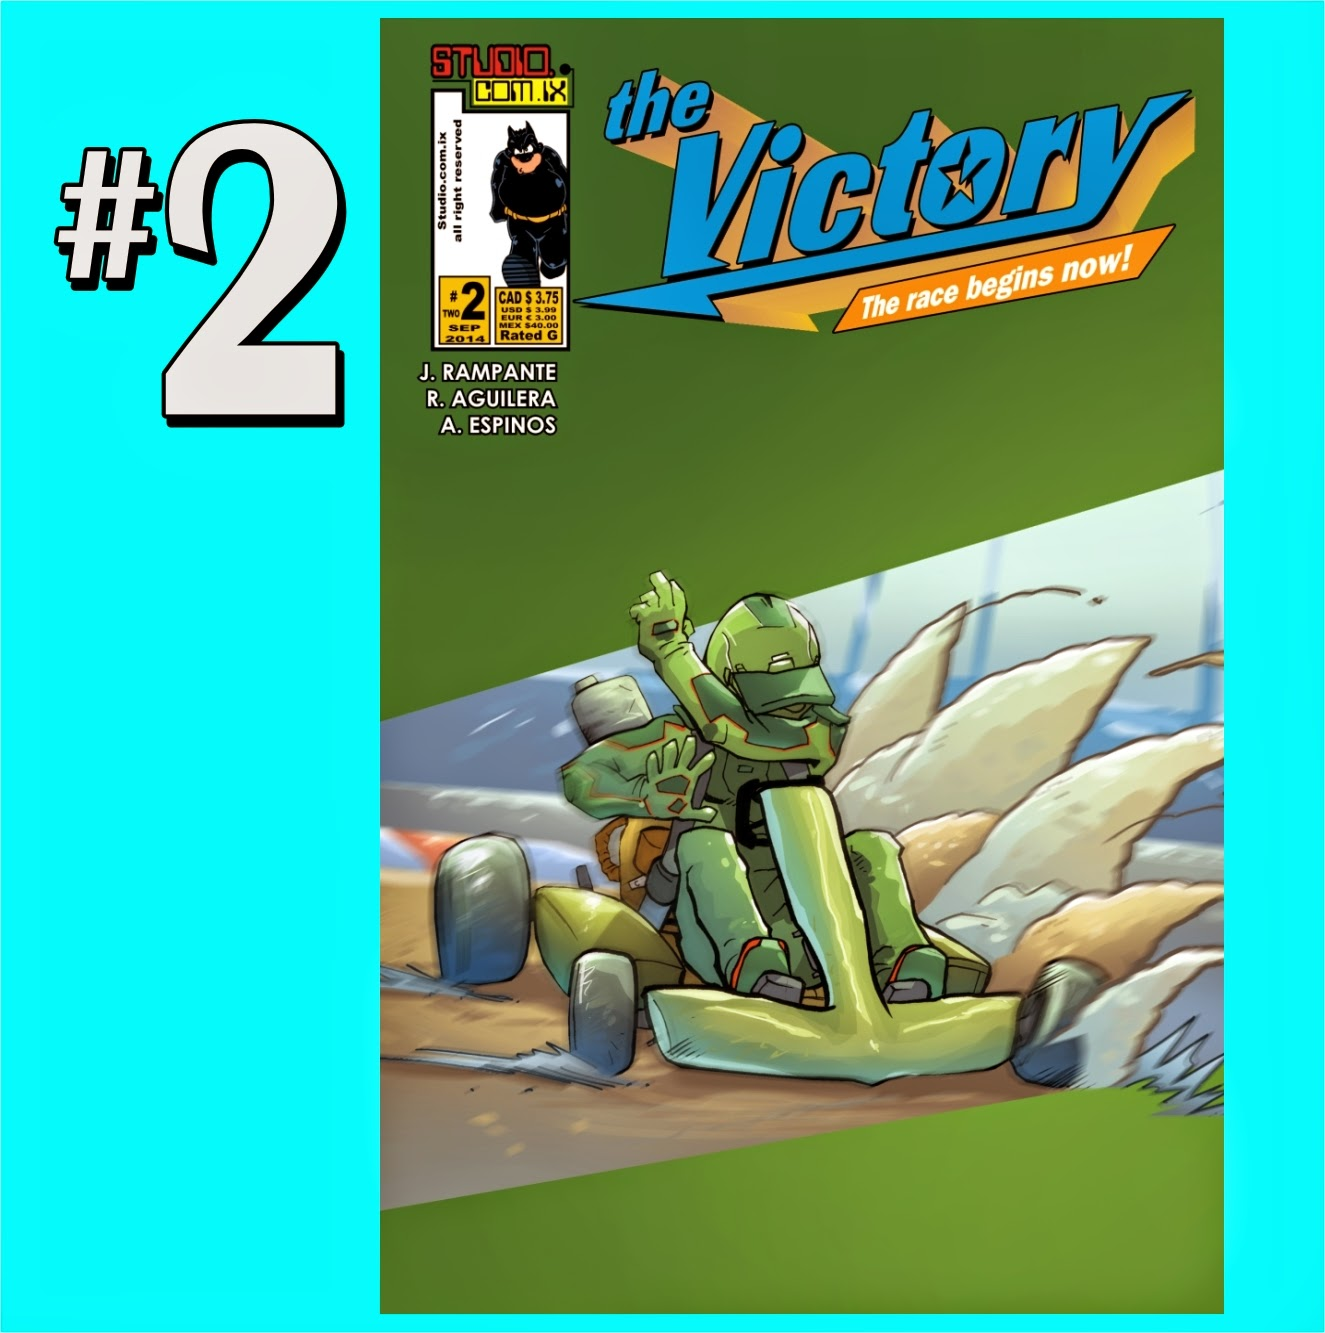 http://studiocomix.storenvy.com/collections/73865-all-products/products/9585193-the-victory-2